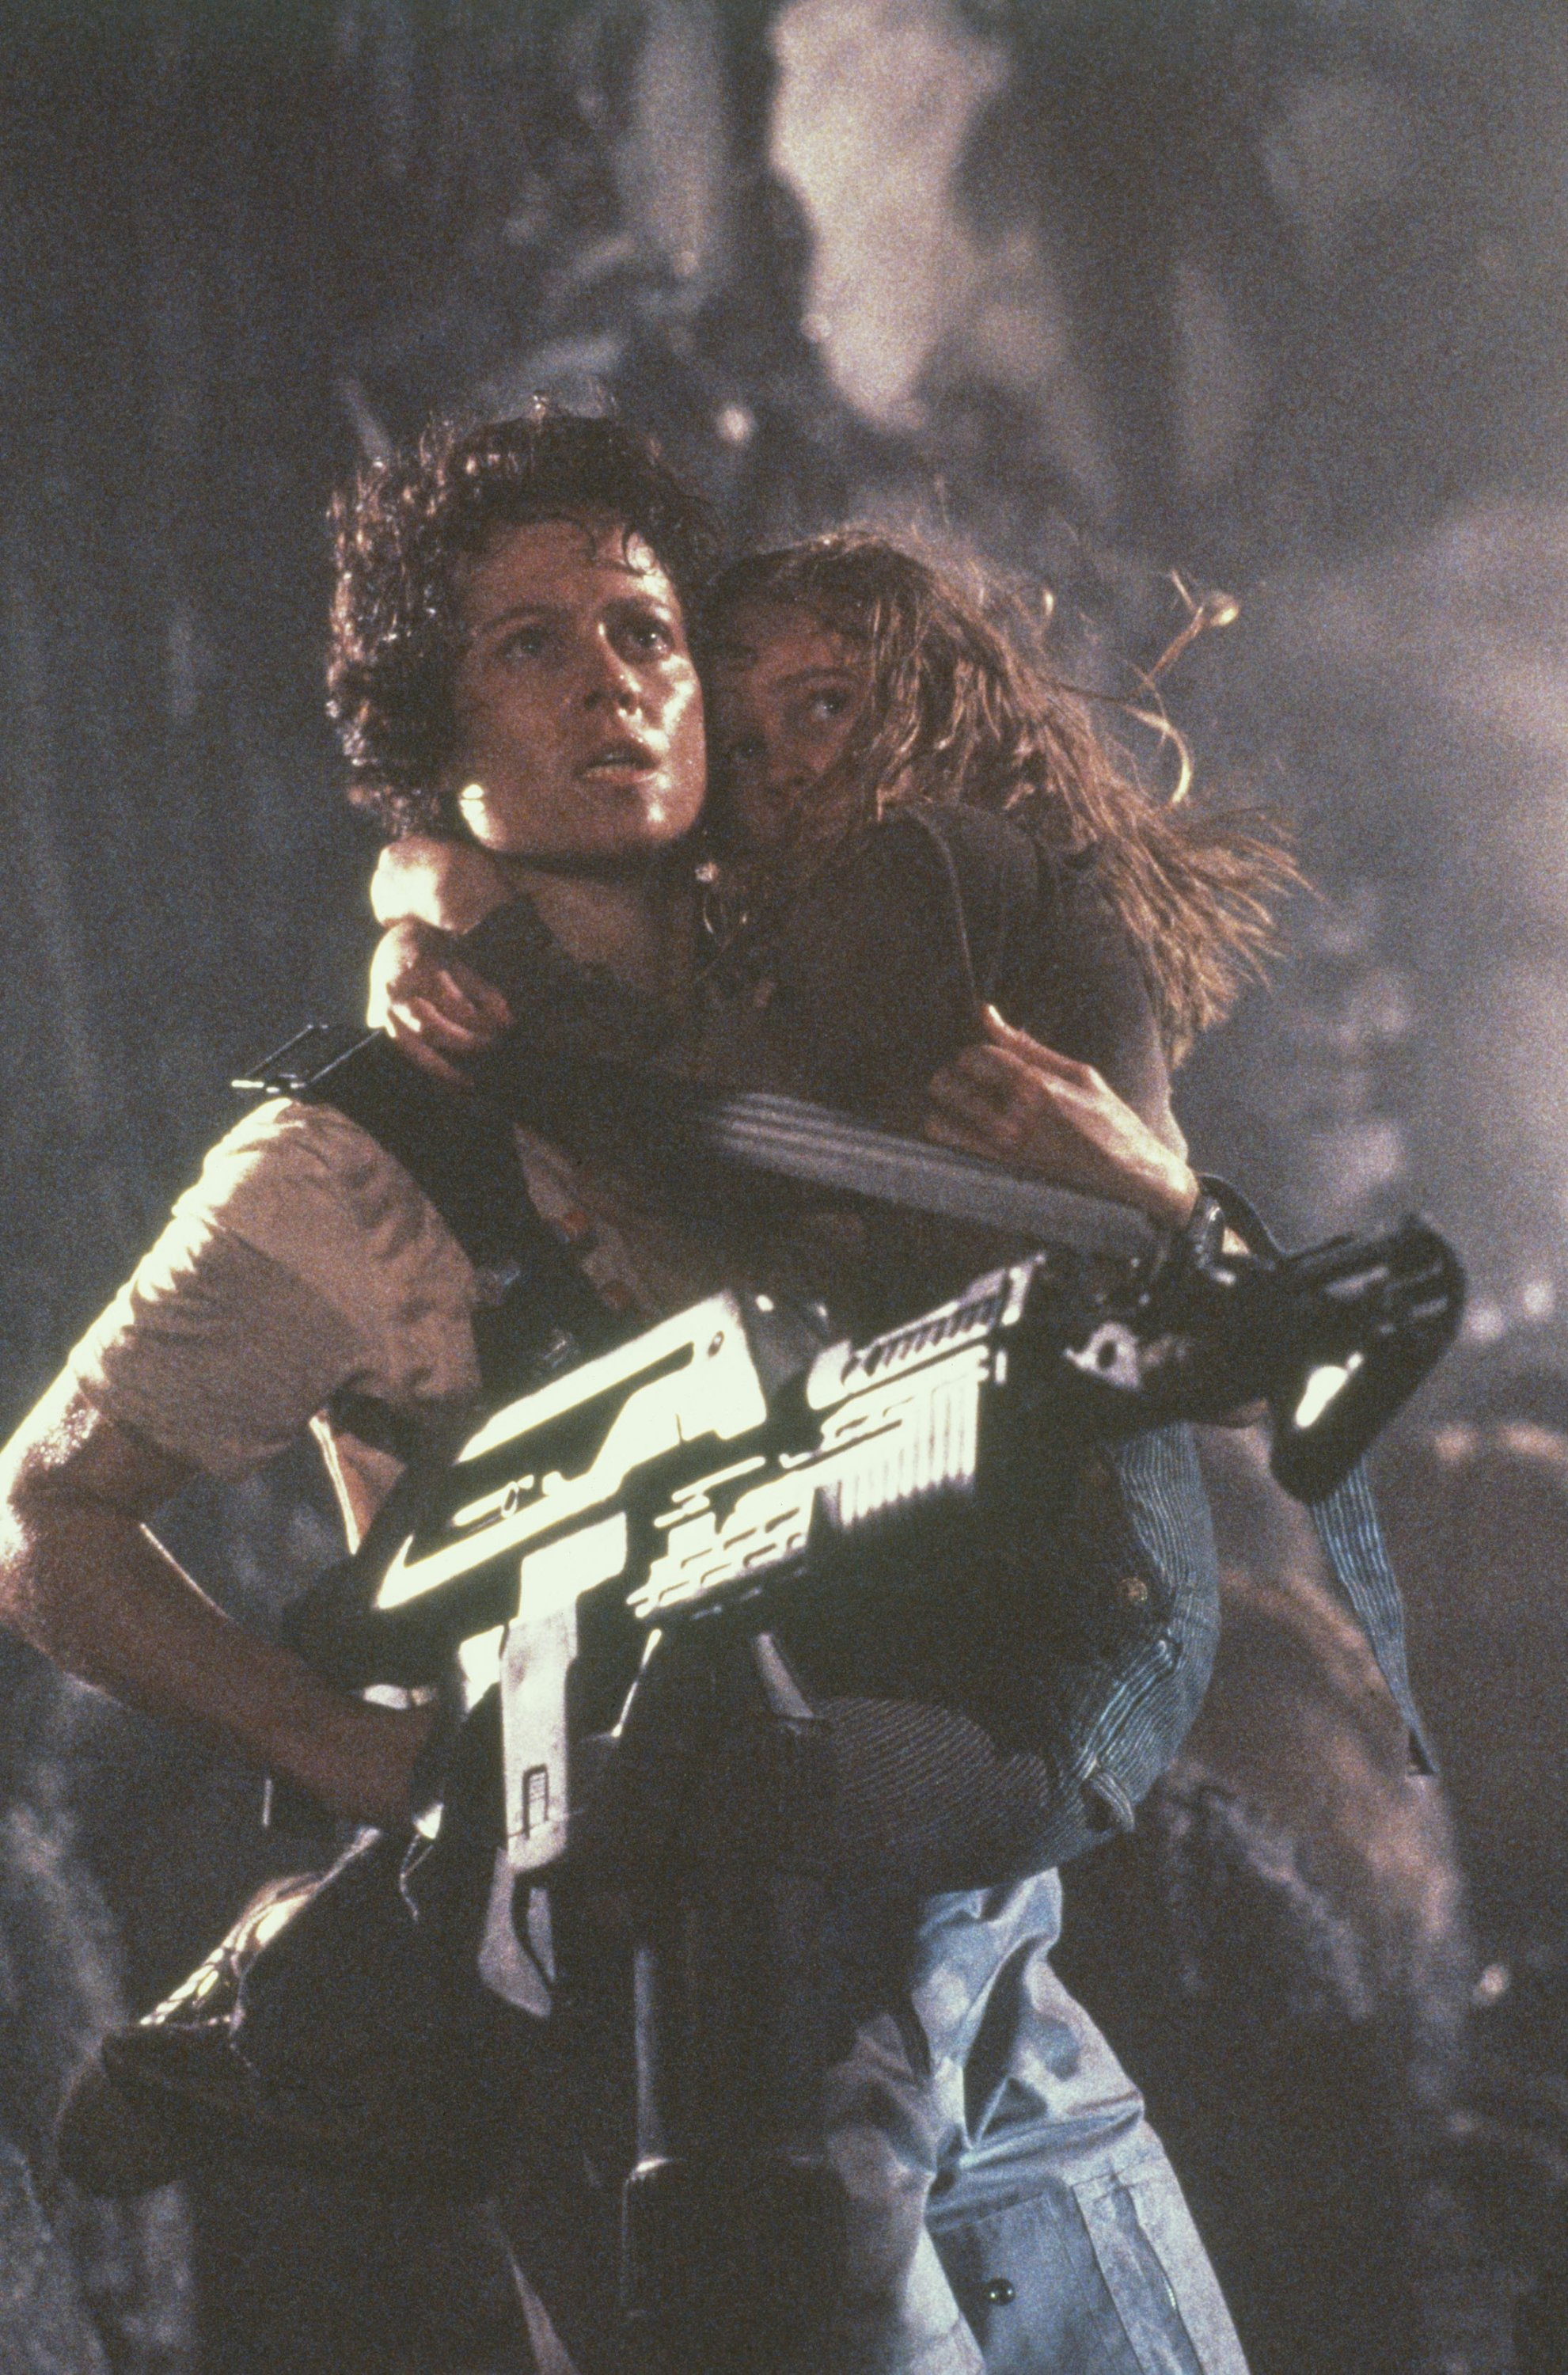 American actresses Sigourney Weaver carries Carrie Henn on the set of the film 'Aliens', directed by James Cameron and released in 1986. (Getty Images)